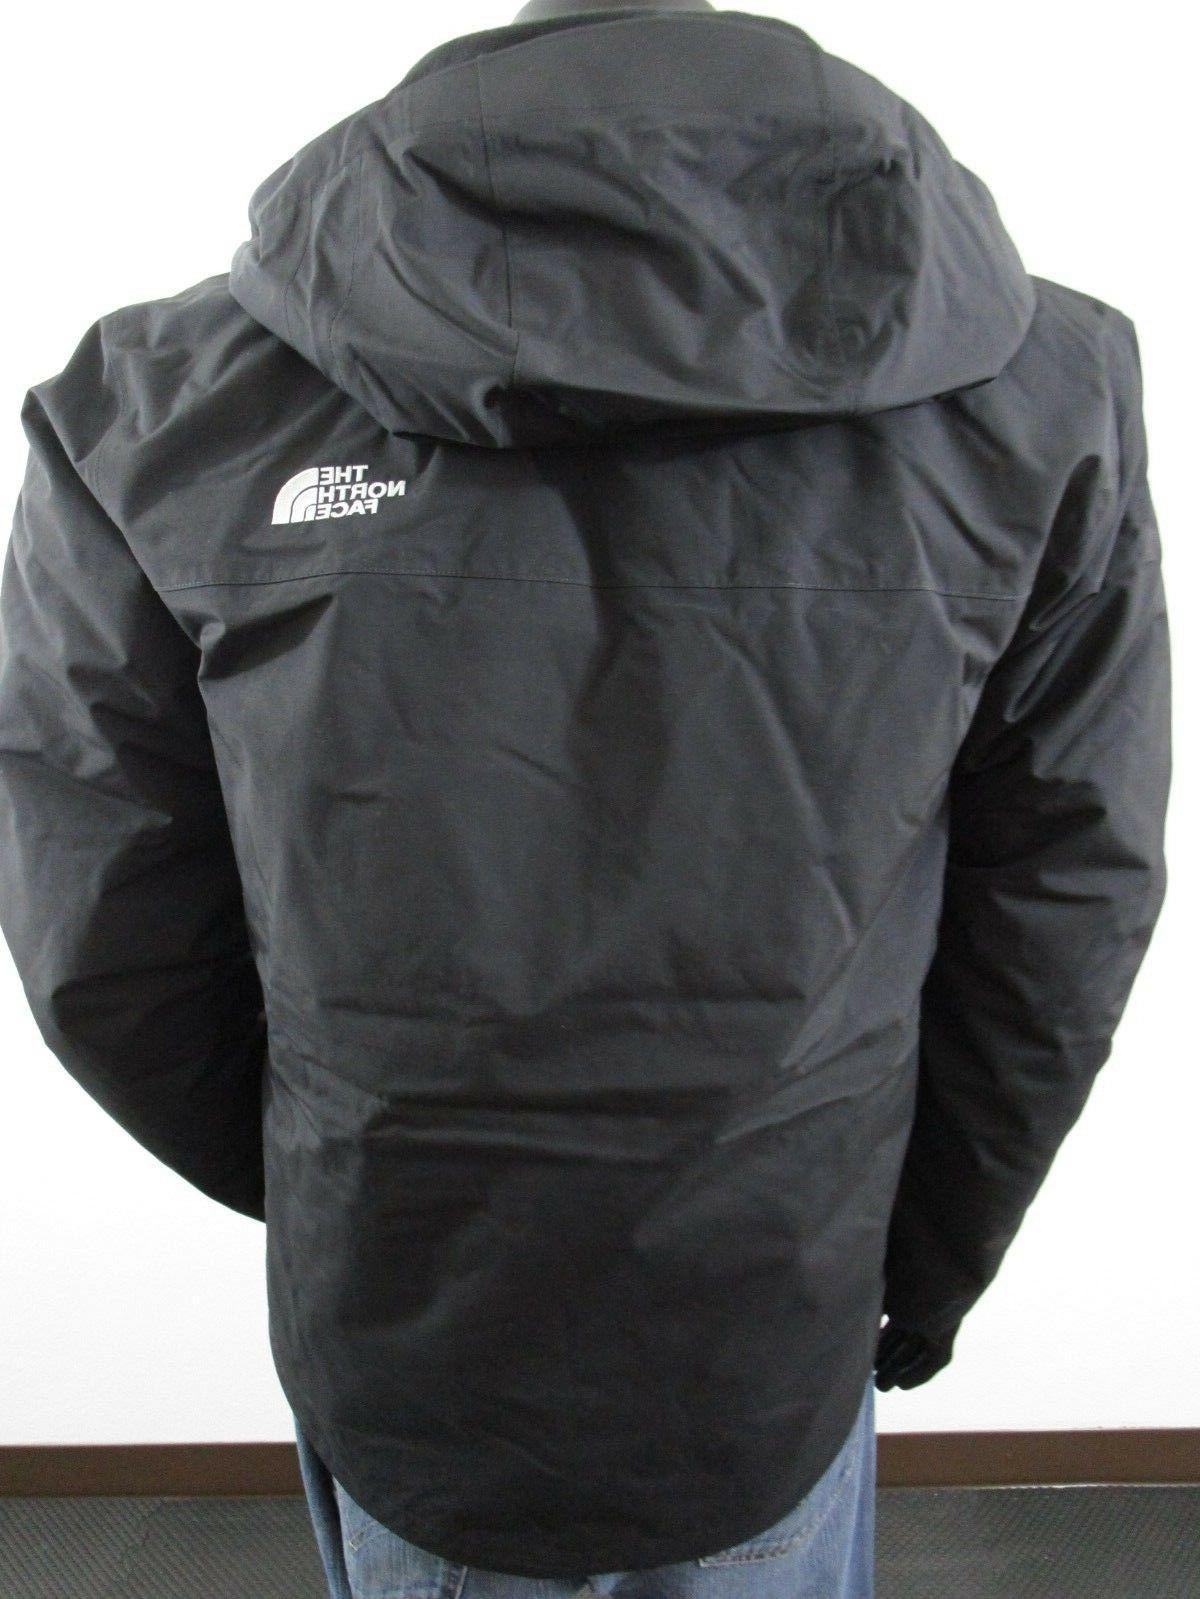 NWT TNF The North Face Carto Triclimate Hooded - Black